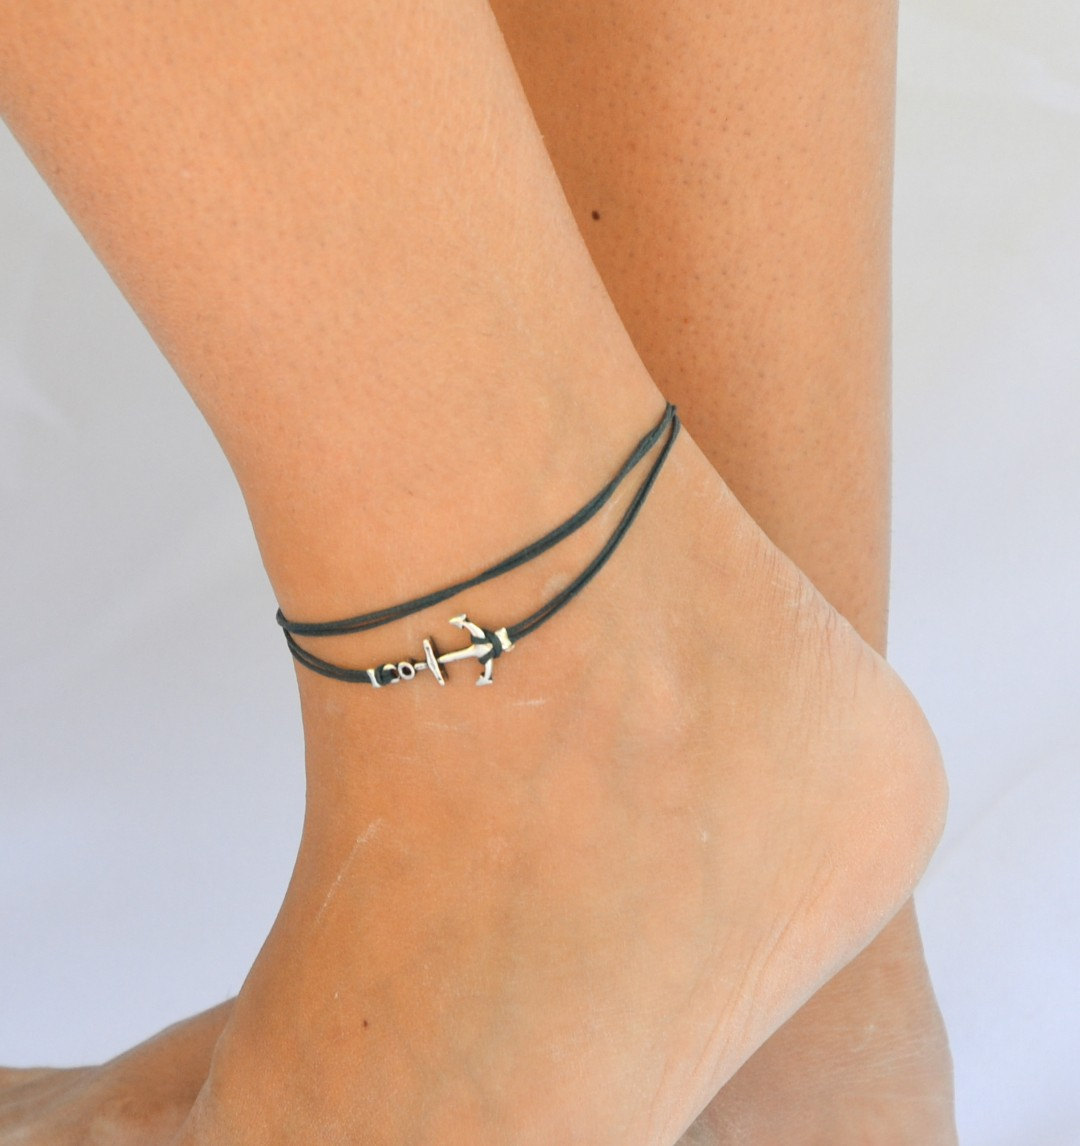 petit d bracelet mini bracelets down cool plate anklet ankle name